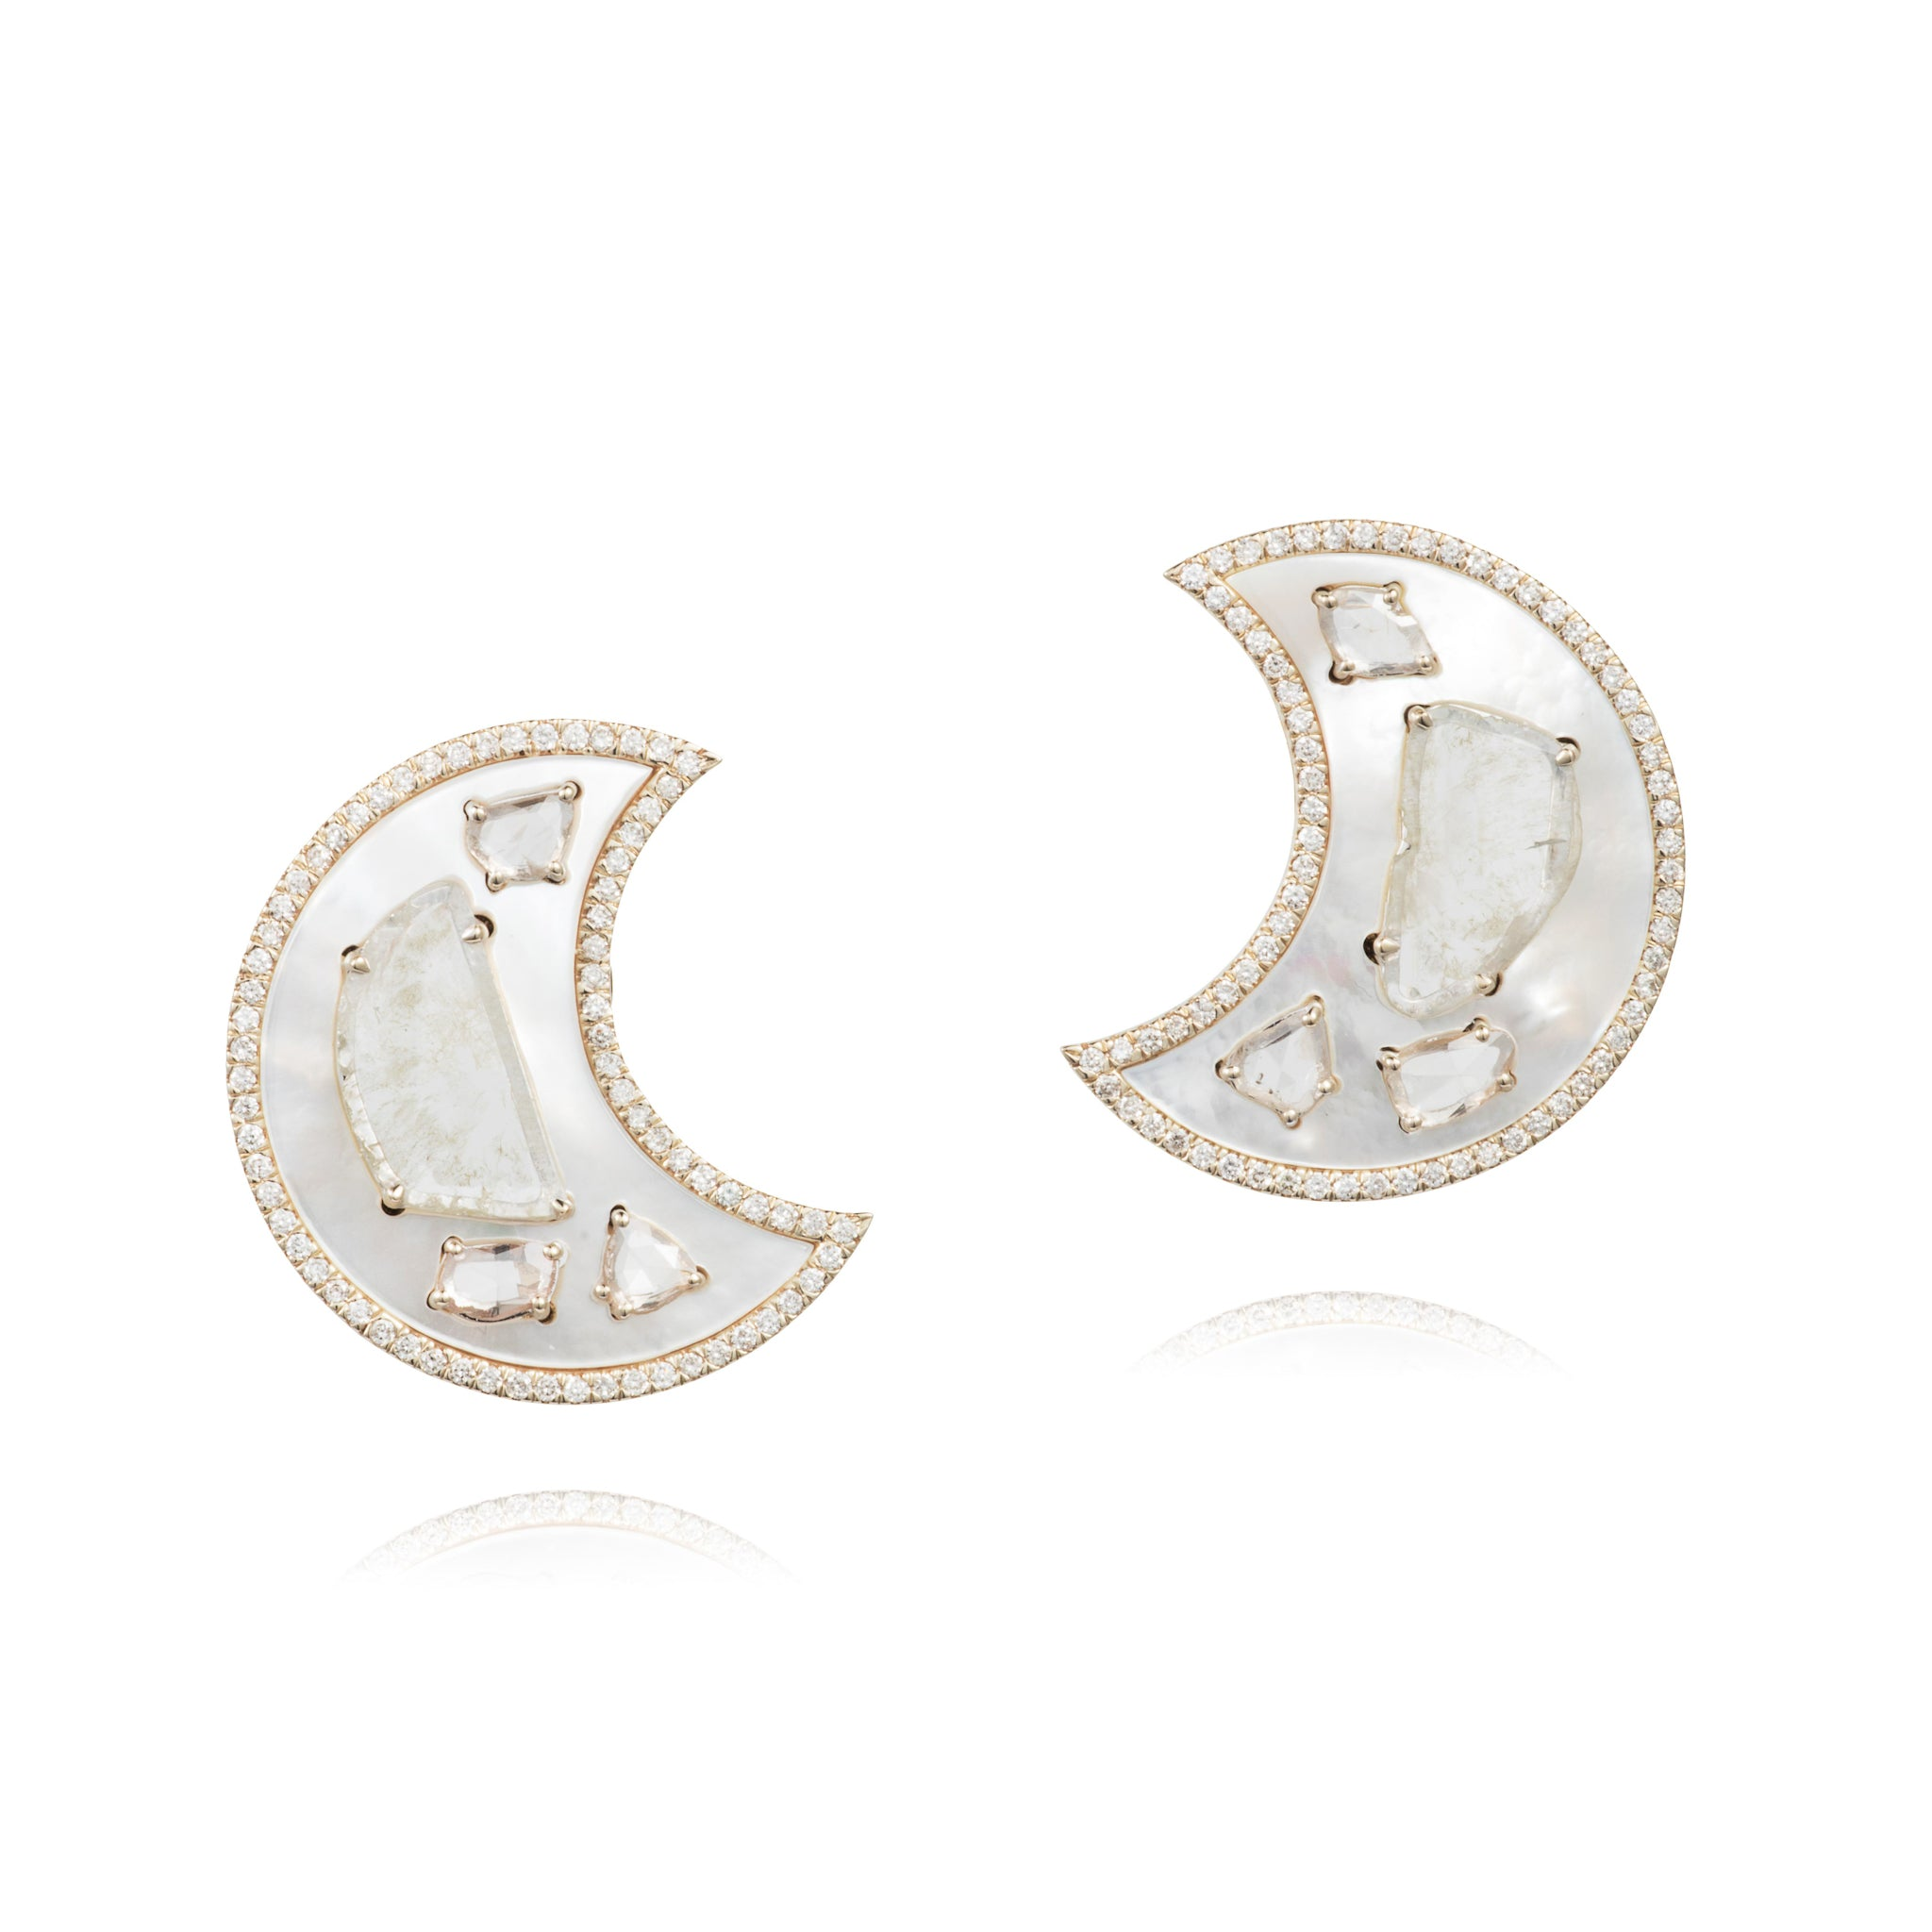 Lunar Diva Earrings